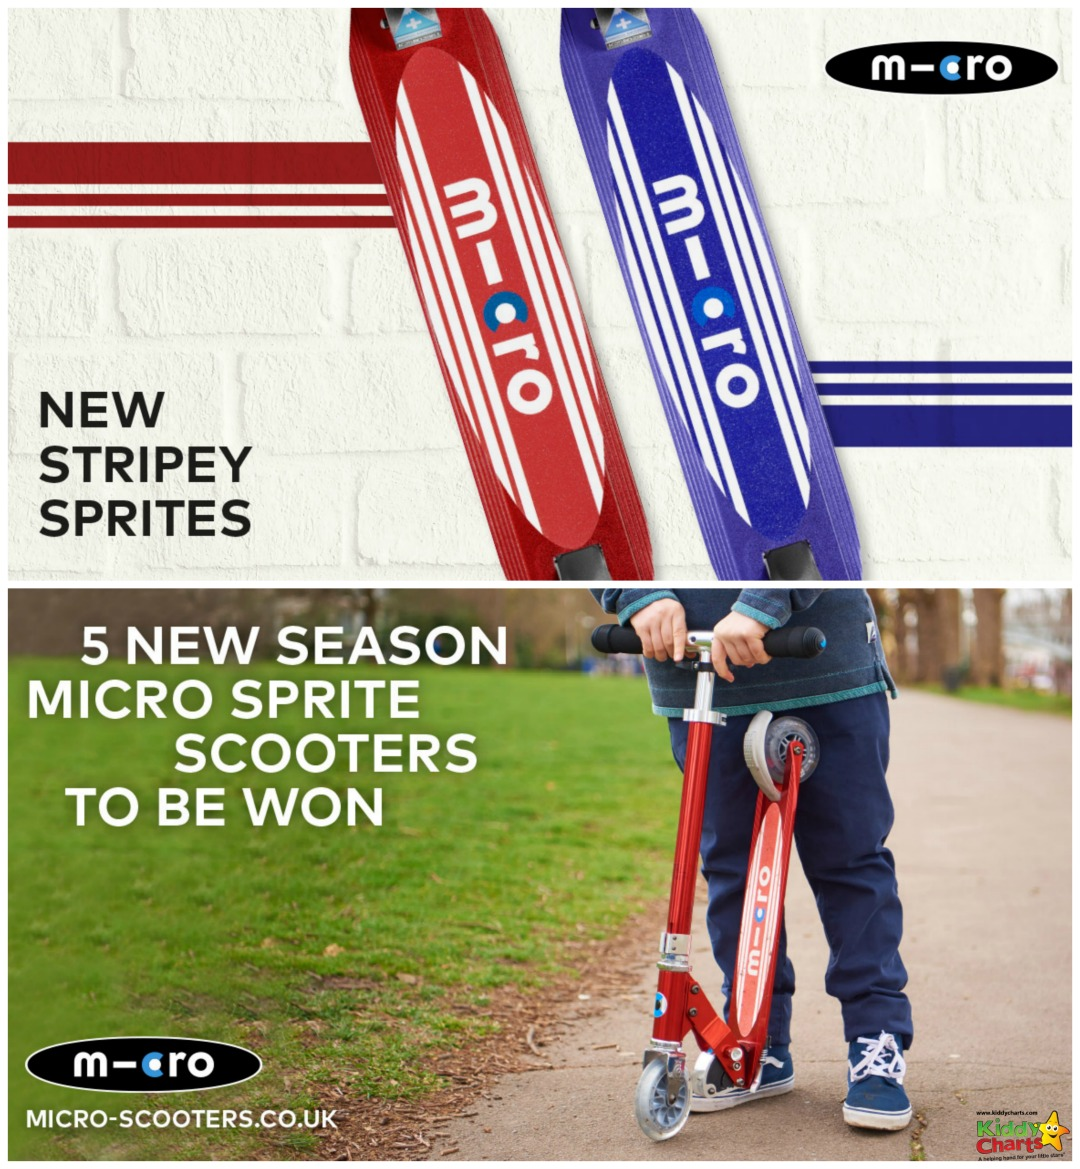 5 New Season Micro Sprites to be won!